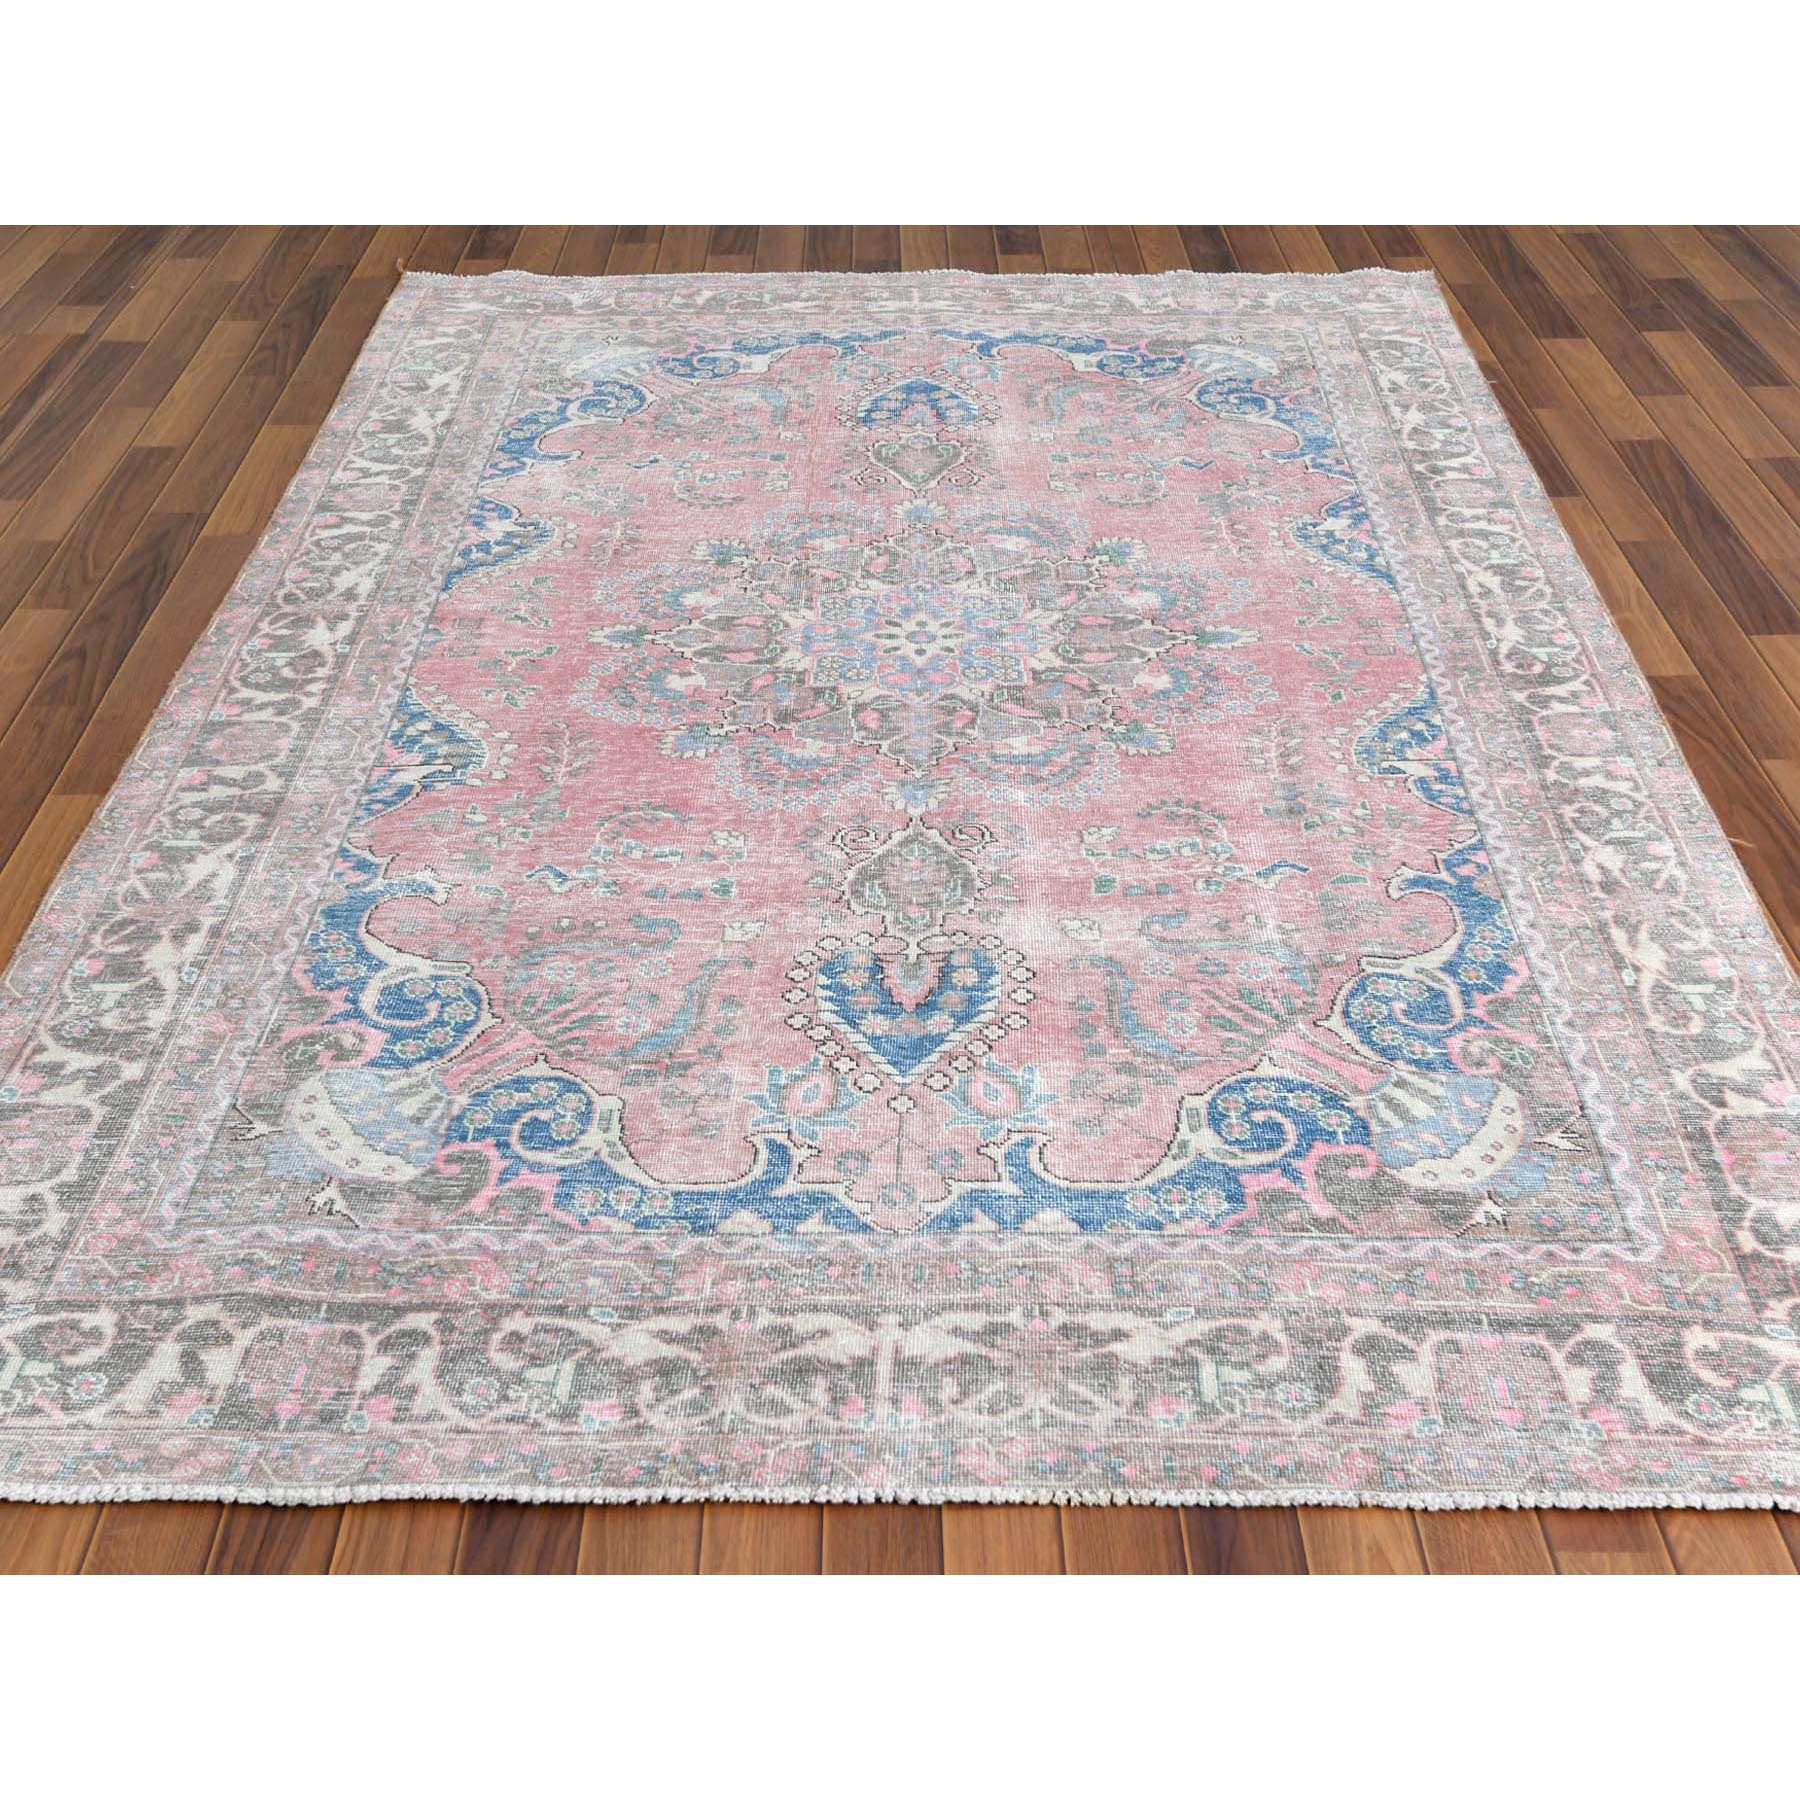 """6'2""""x9'2"""" Faded Pink Semi Antique Pink Persian Tabriz With Medallion Design Shabby Chic Worn Down Clean Pure Wool Hand Knotted Oriental Rug"""